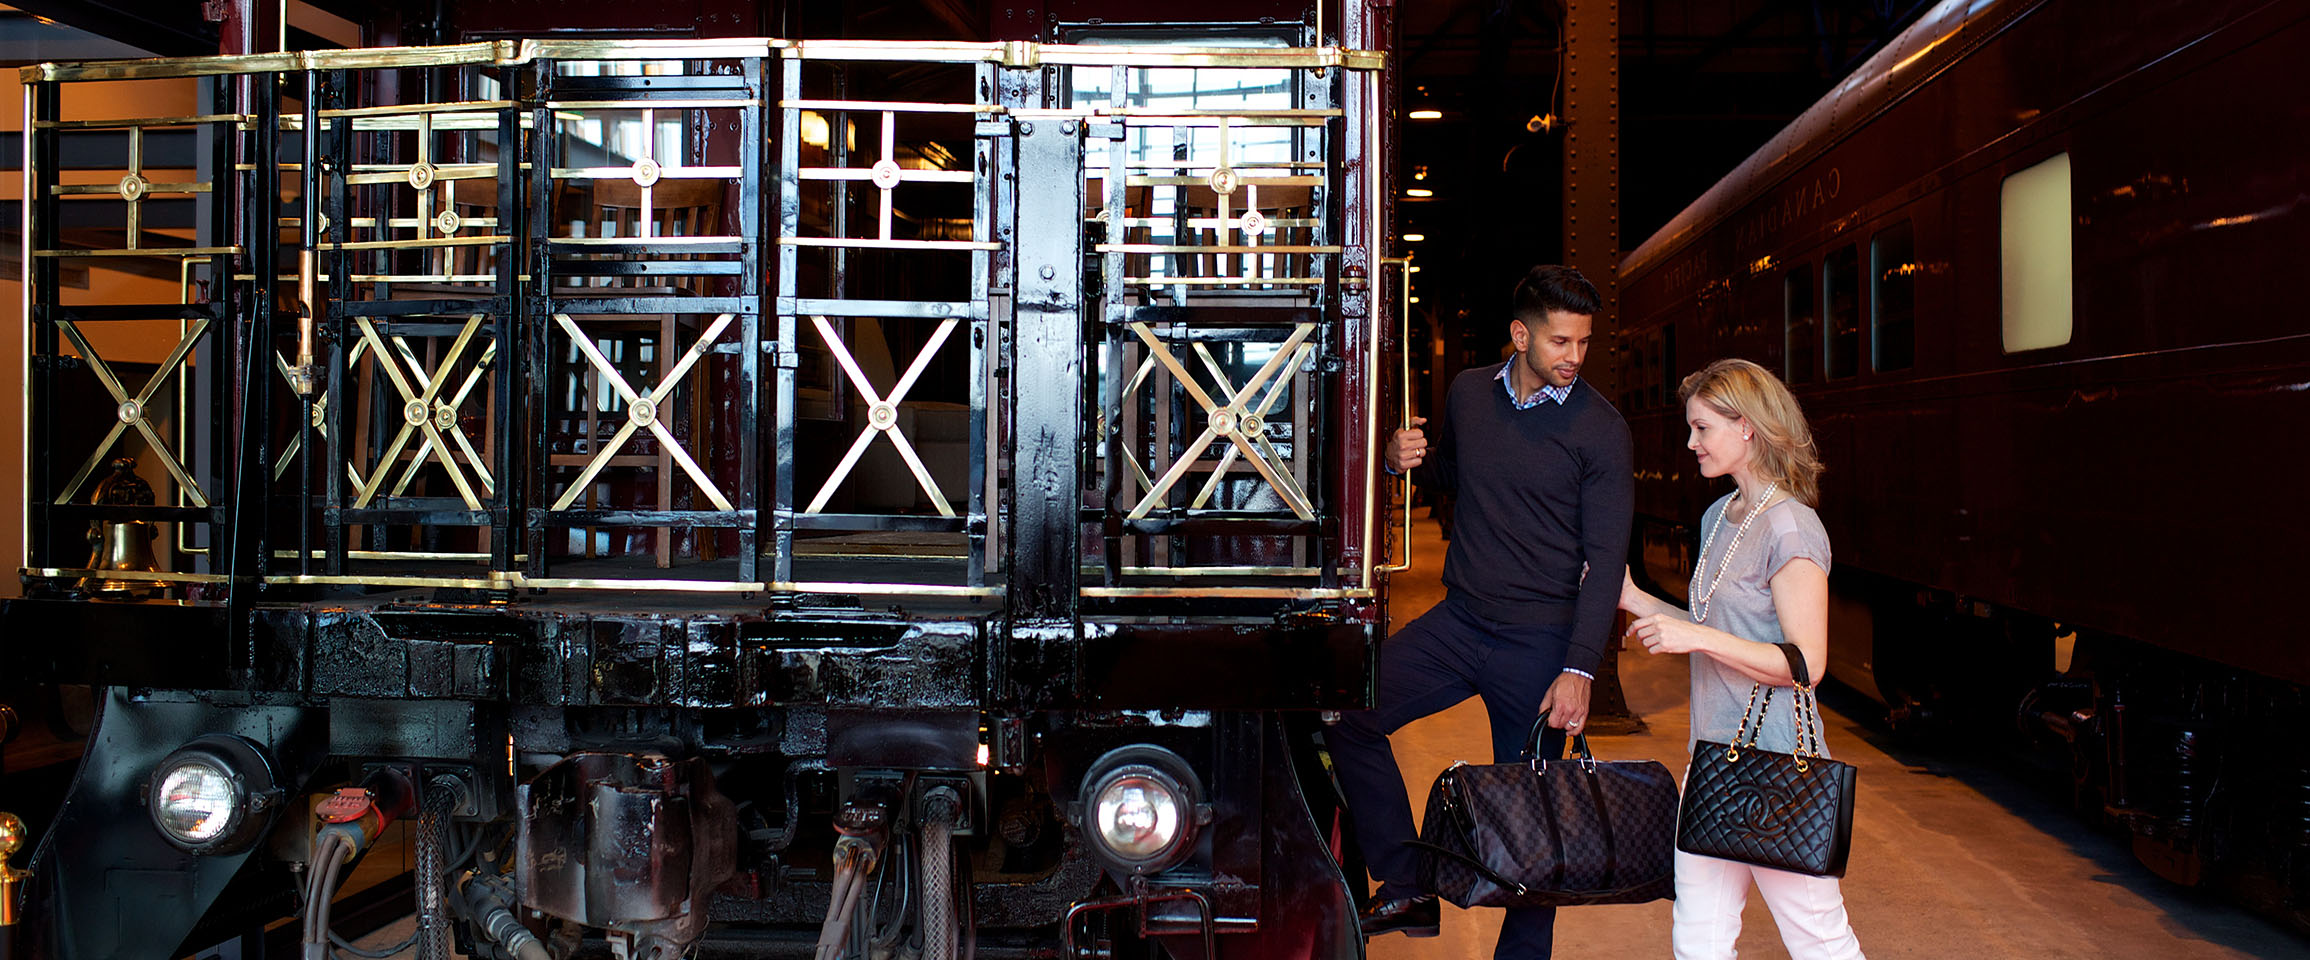 A couple about to board a railcar.